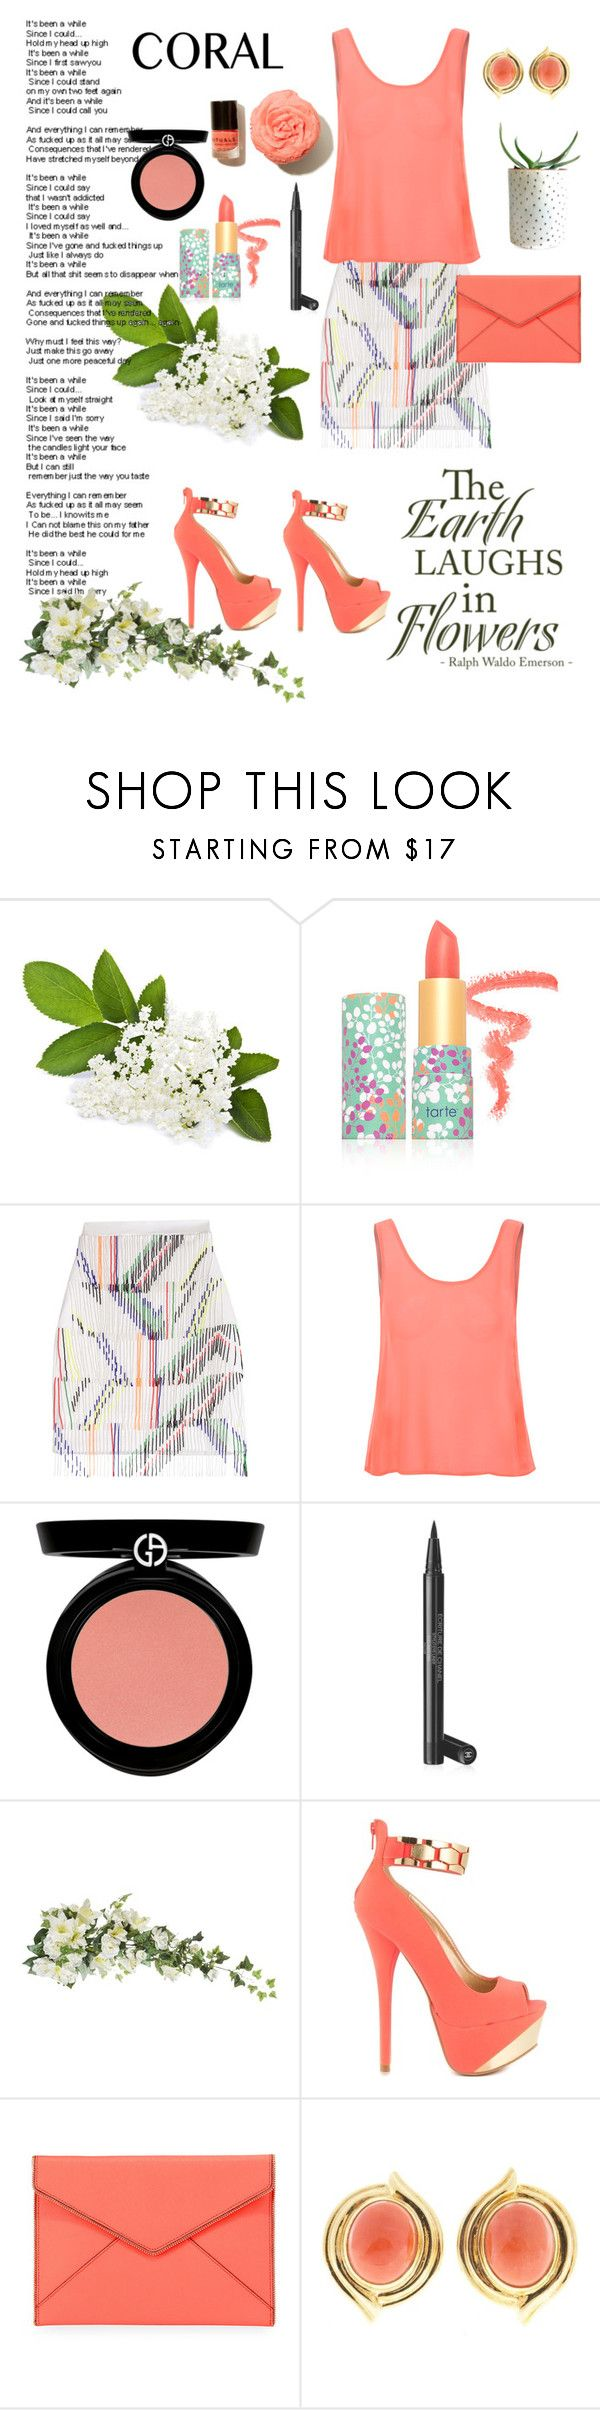 """""""Laugh A Little..."""" by emily-cowan ❤ liked on Polyvore featuring tarte, Preen, Glamorous, Armani Beauty, Chanel, Darice, Qupid and Rebecca Minkoff"""